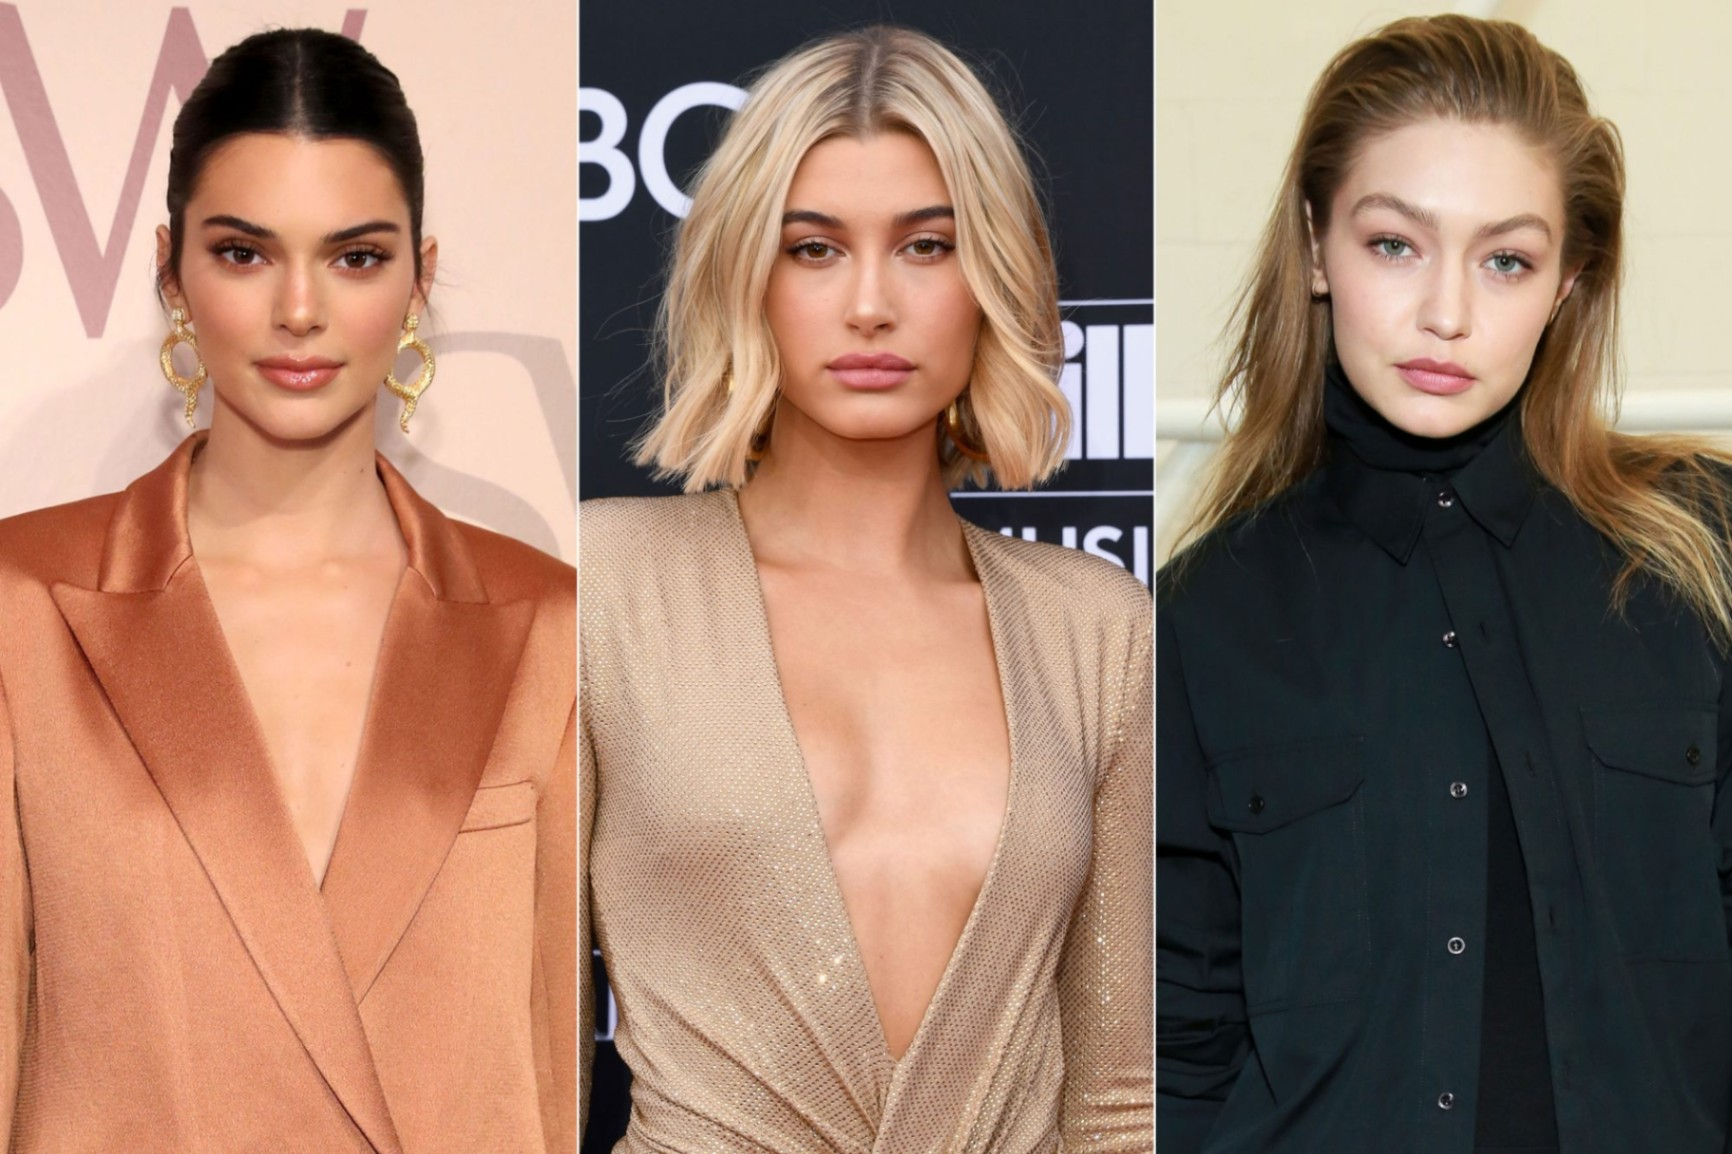 These Celebrities Have Become Fashion Icons - Find Out Who They Are